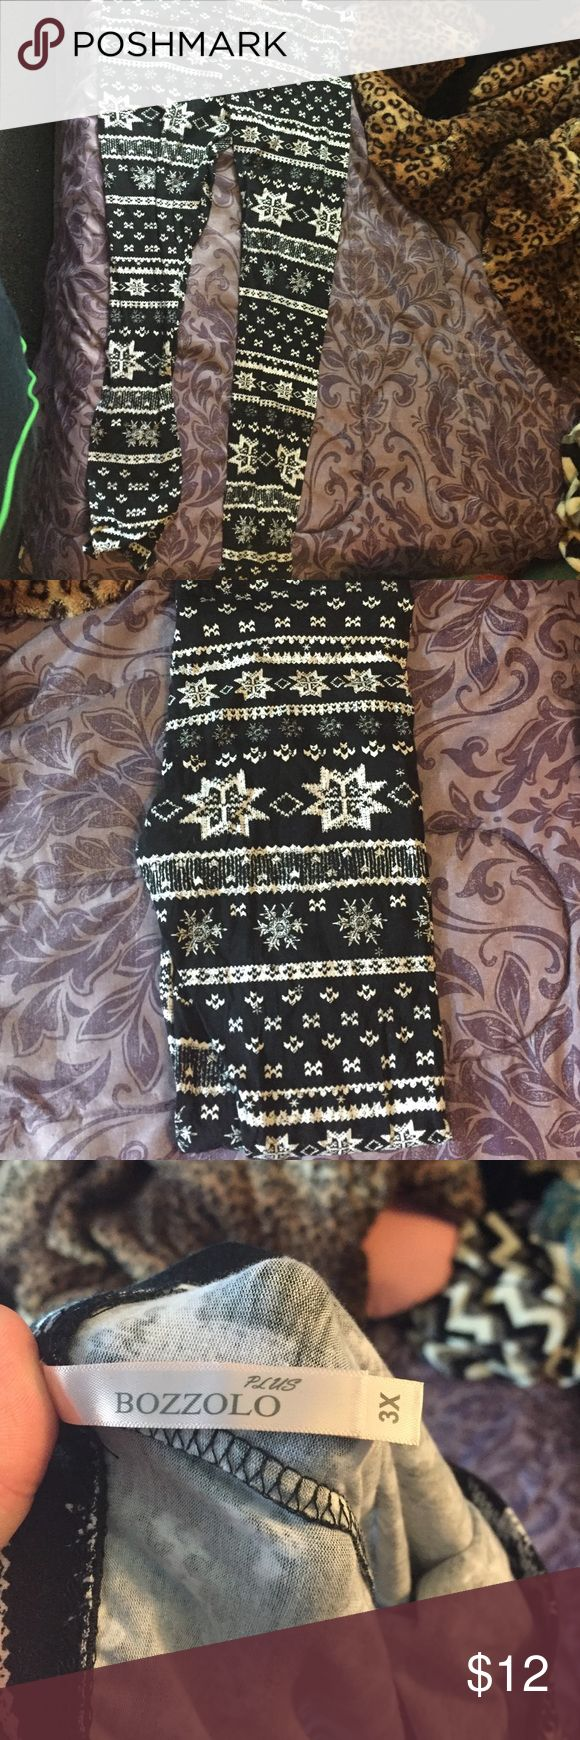 Bozzolo Plus Black and white Christmas leggings Bozzolo Plus black and white Christmas print leggings. Size 3x but fit like a 2x. Only ever tried on, never worn. Purchased from Deb. Deb Pants Leggings